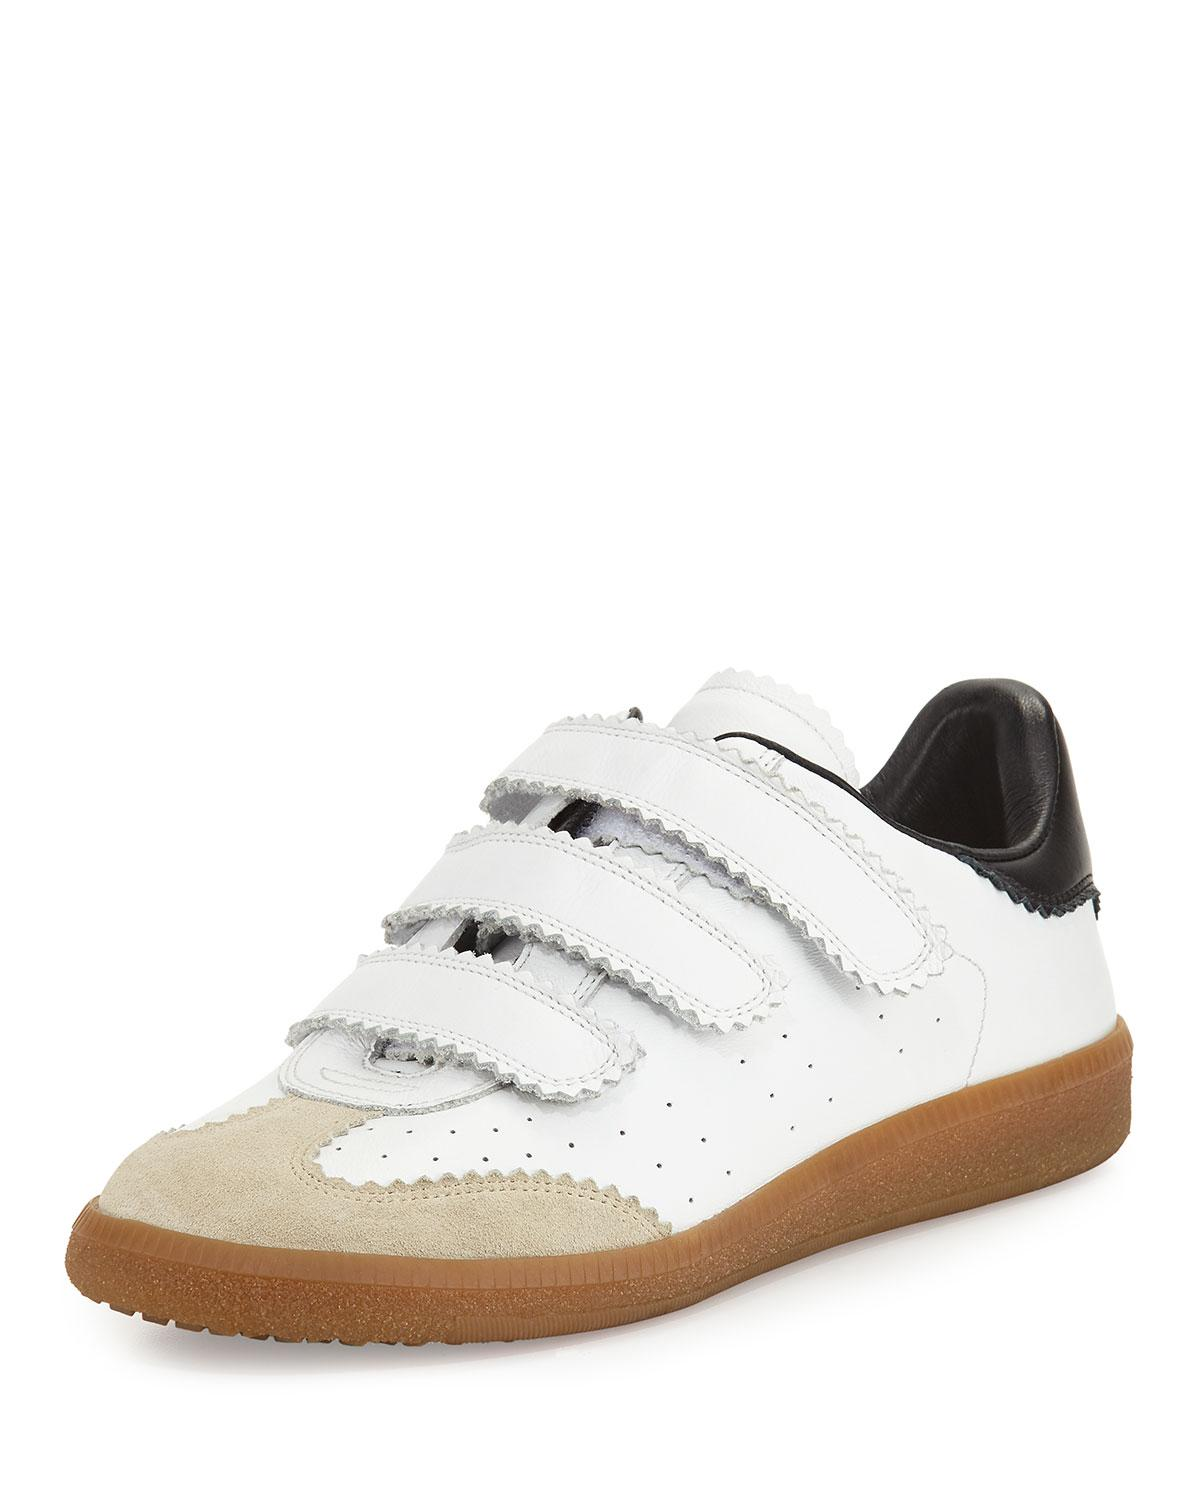 Isabel Marantwhite beth leather sneakers